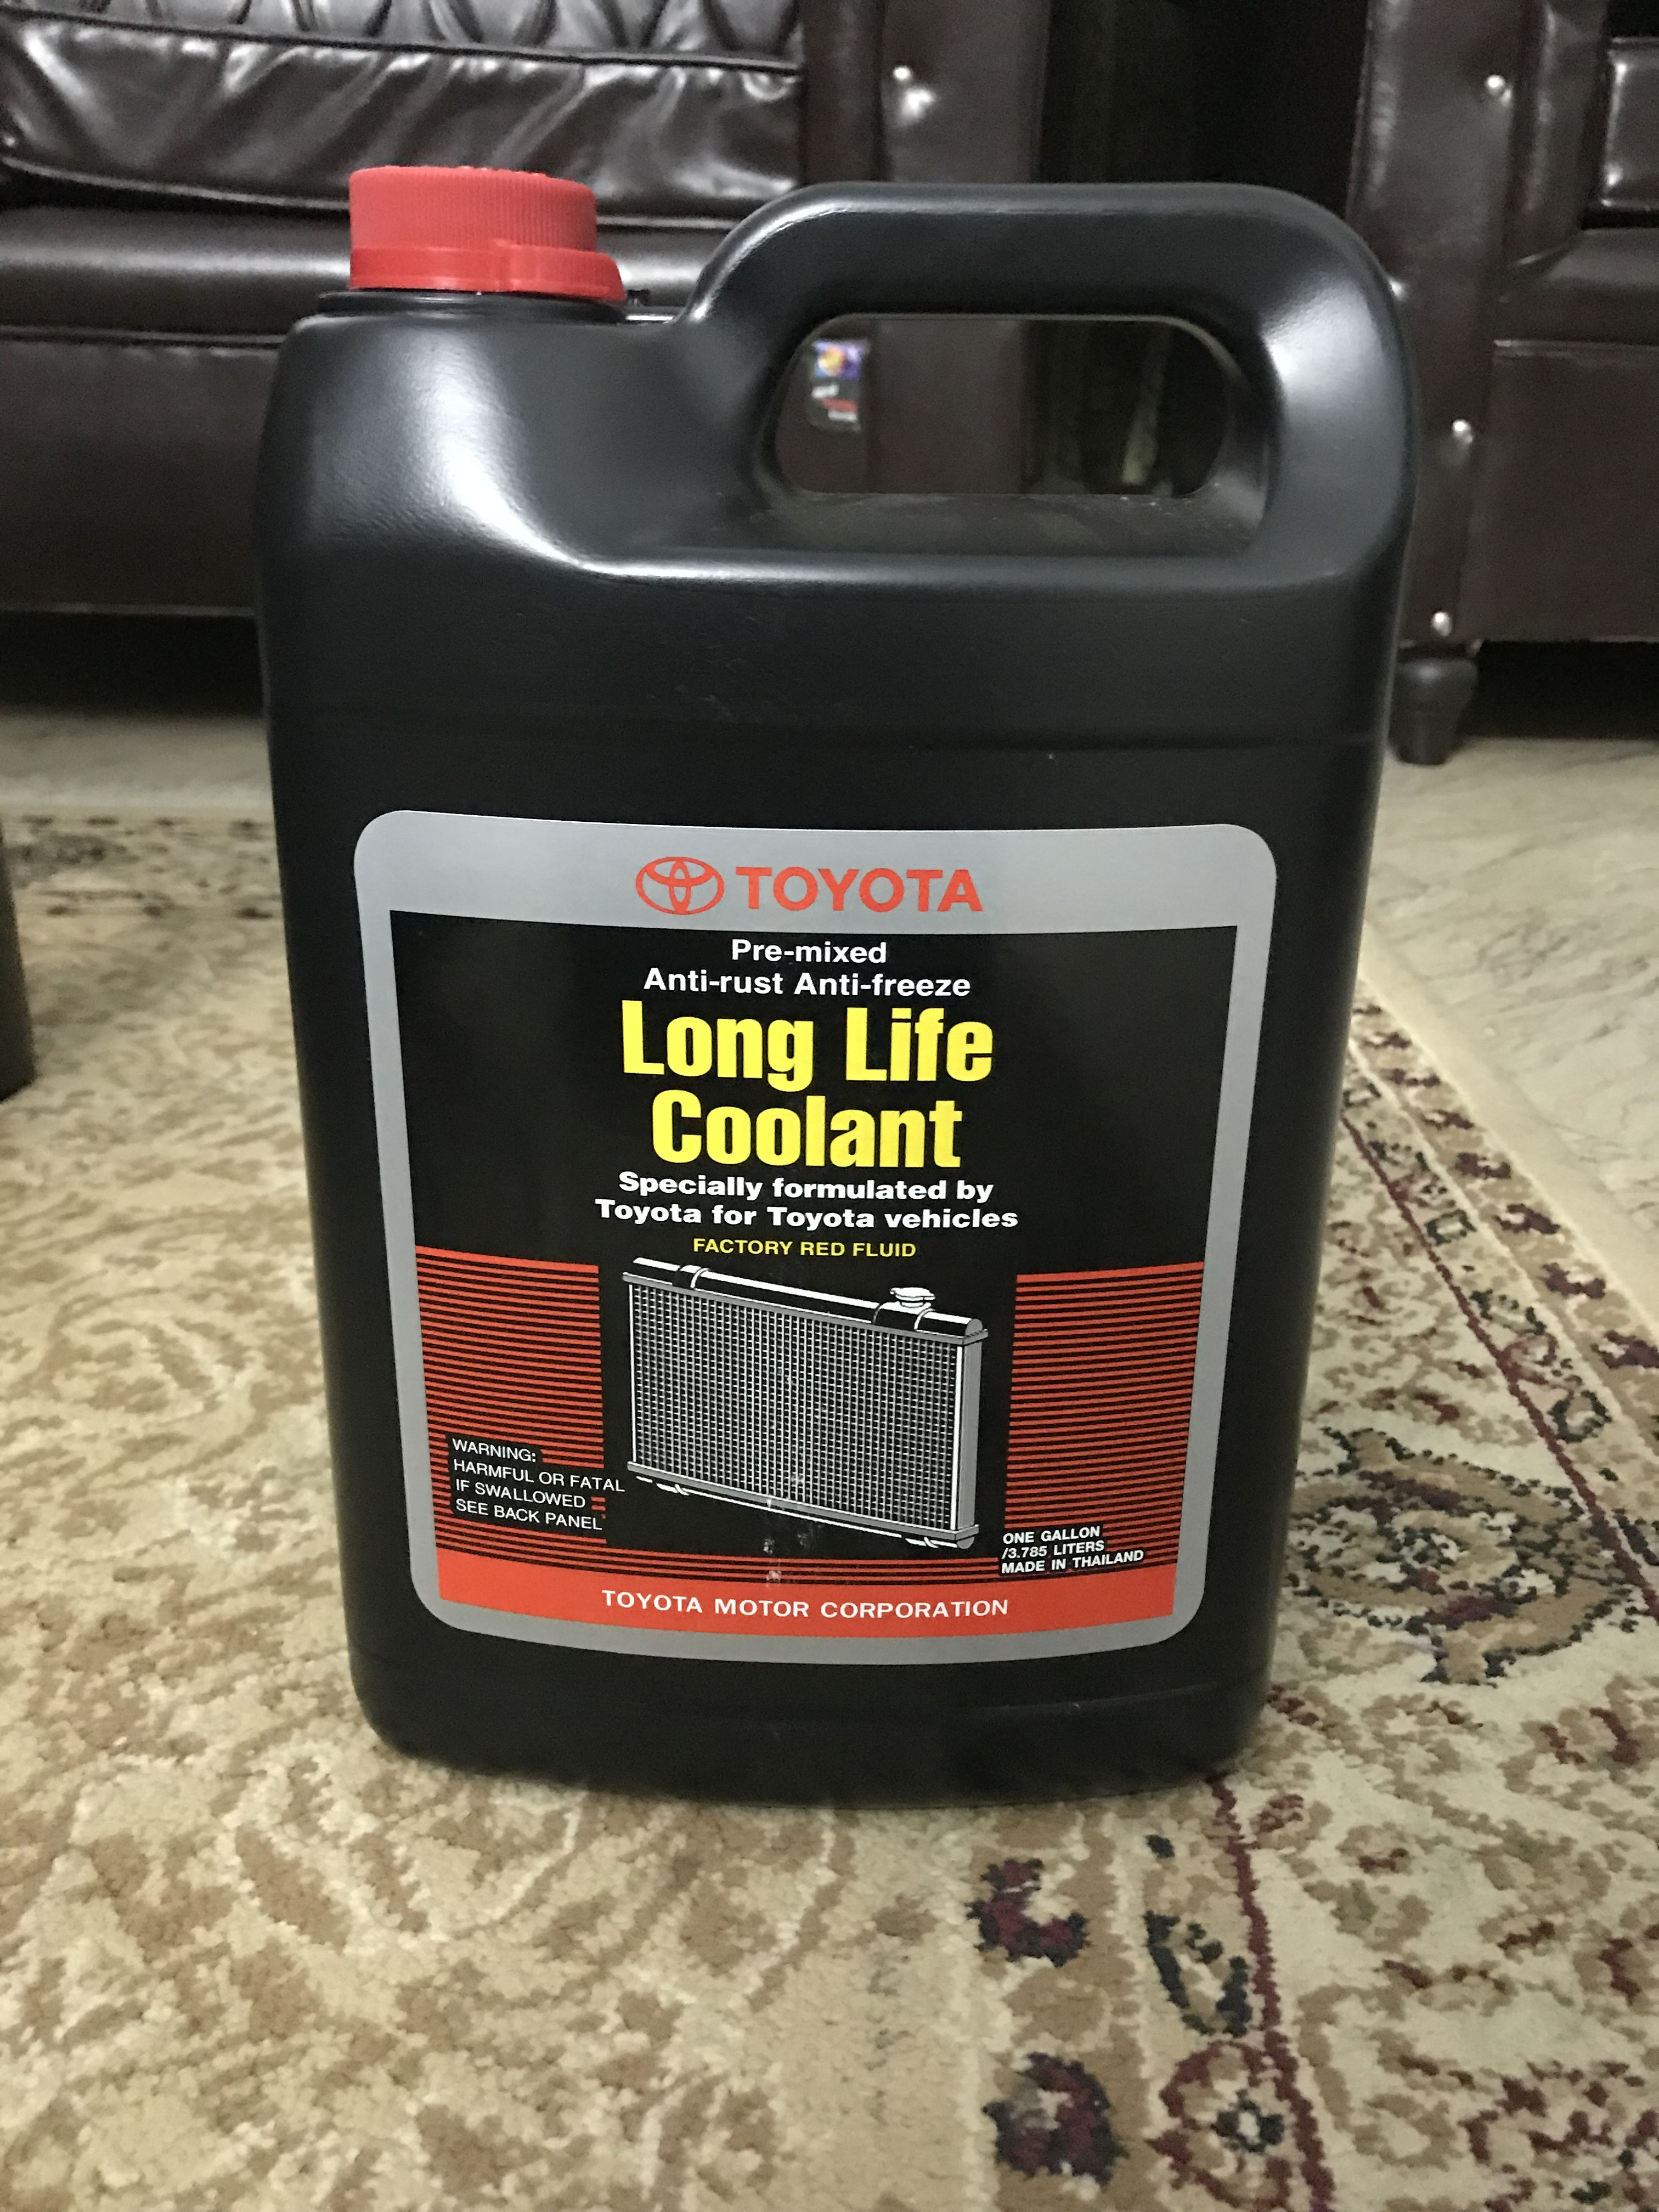 Difference between these Toyota Super Long Life coolant